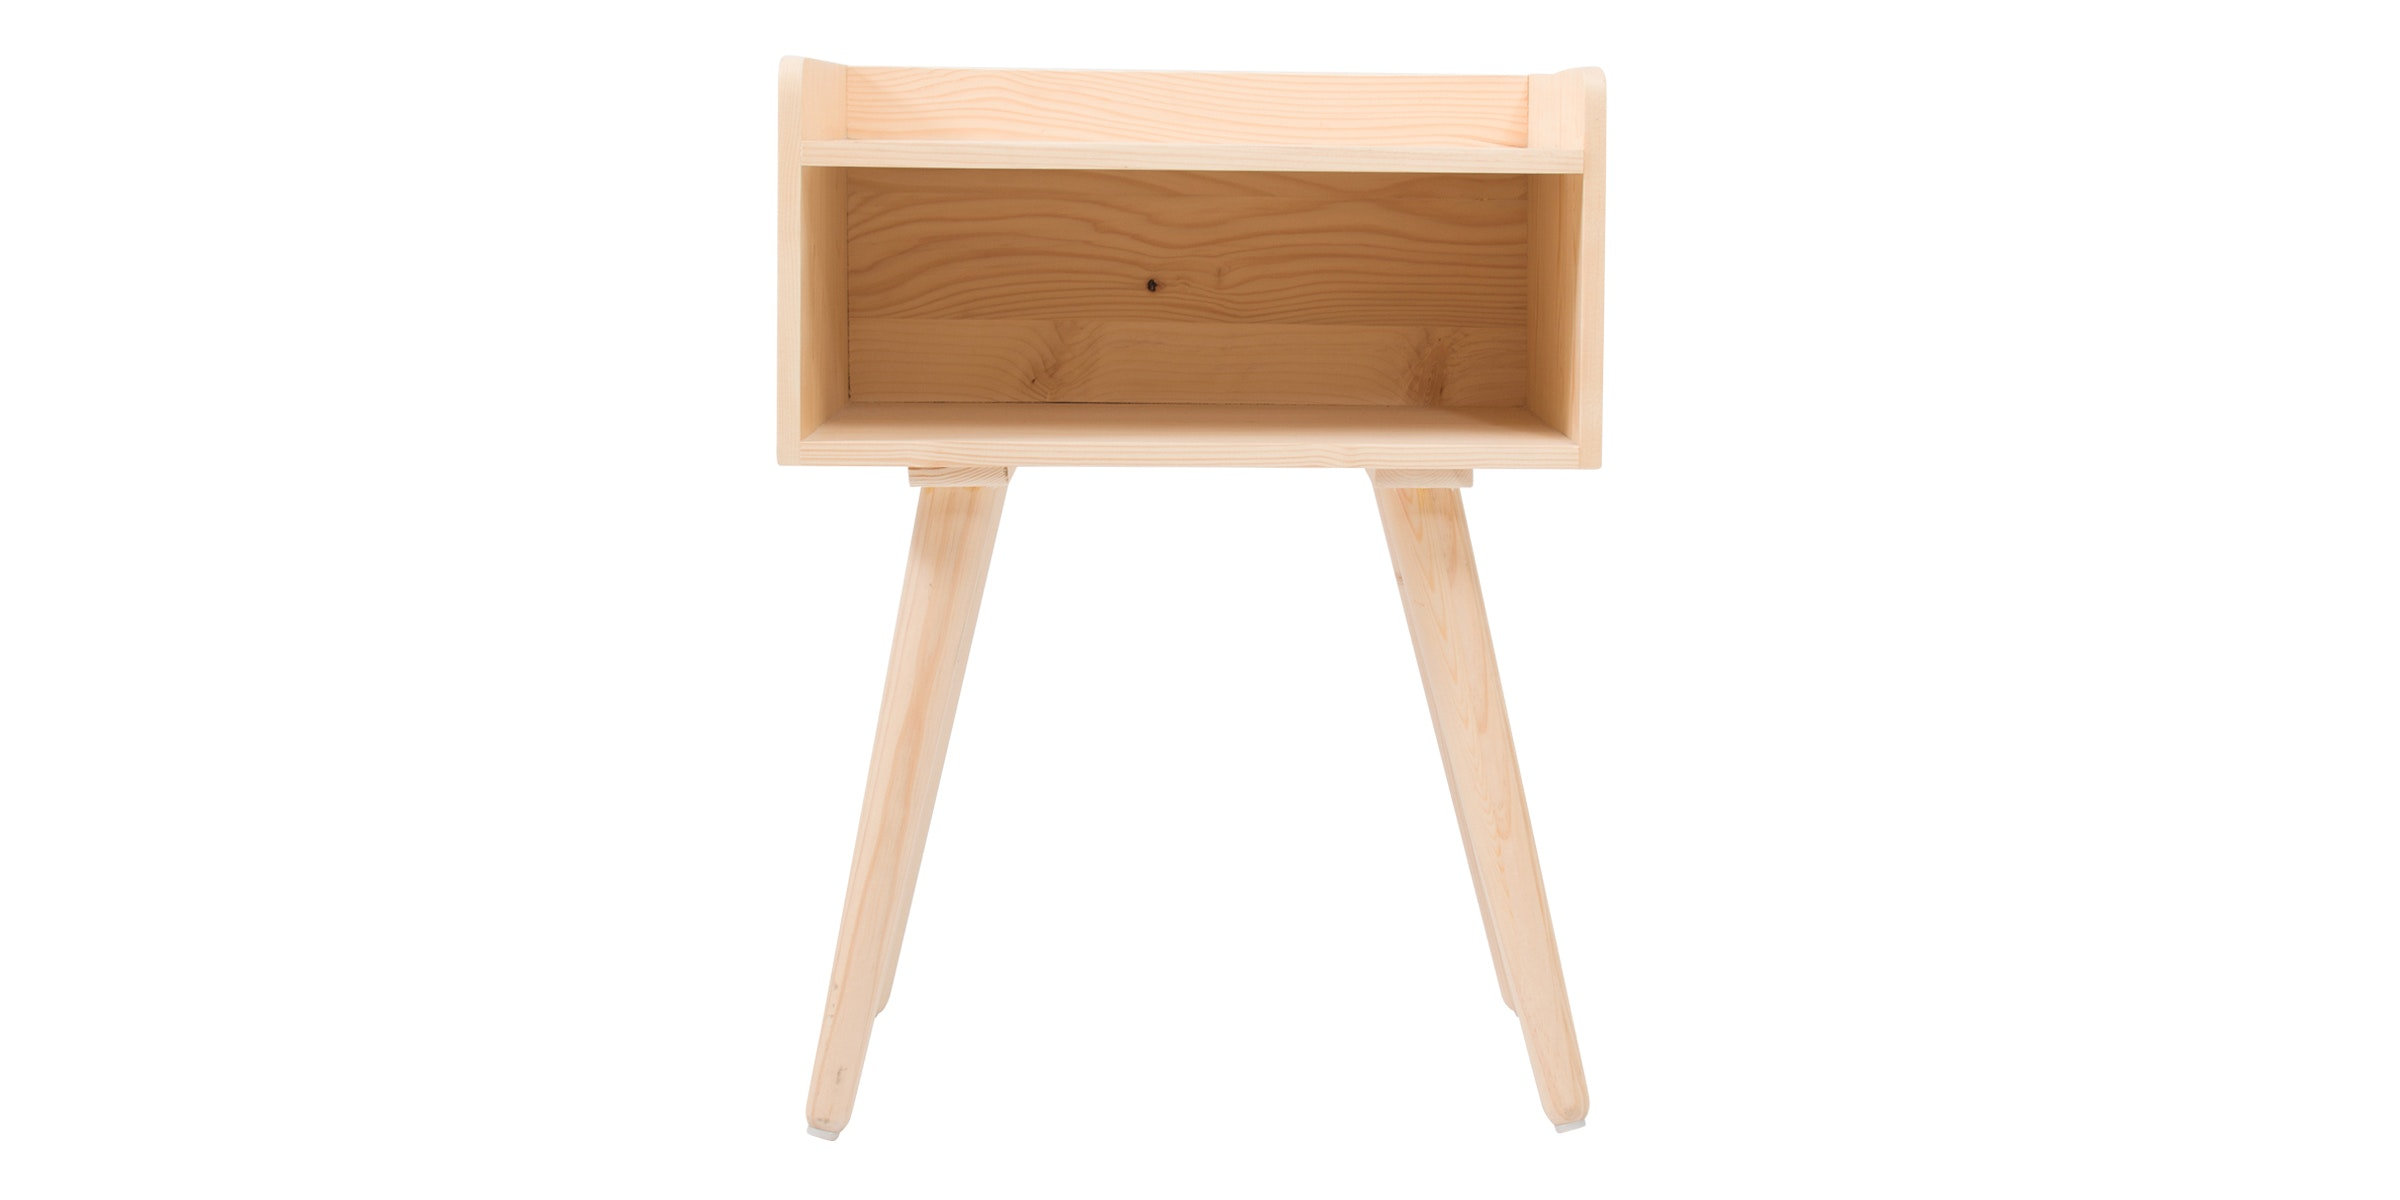 Kreakita Baneberry Bedside Table